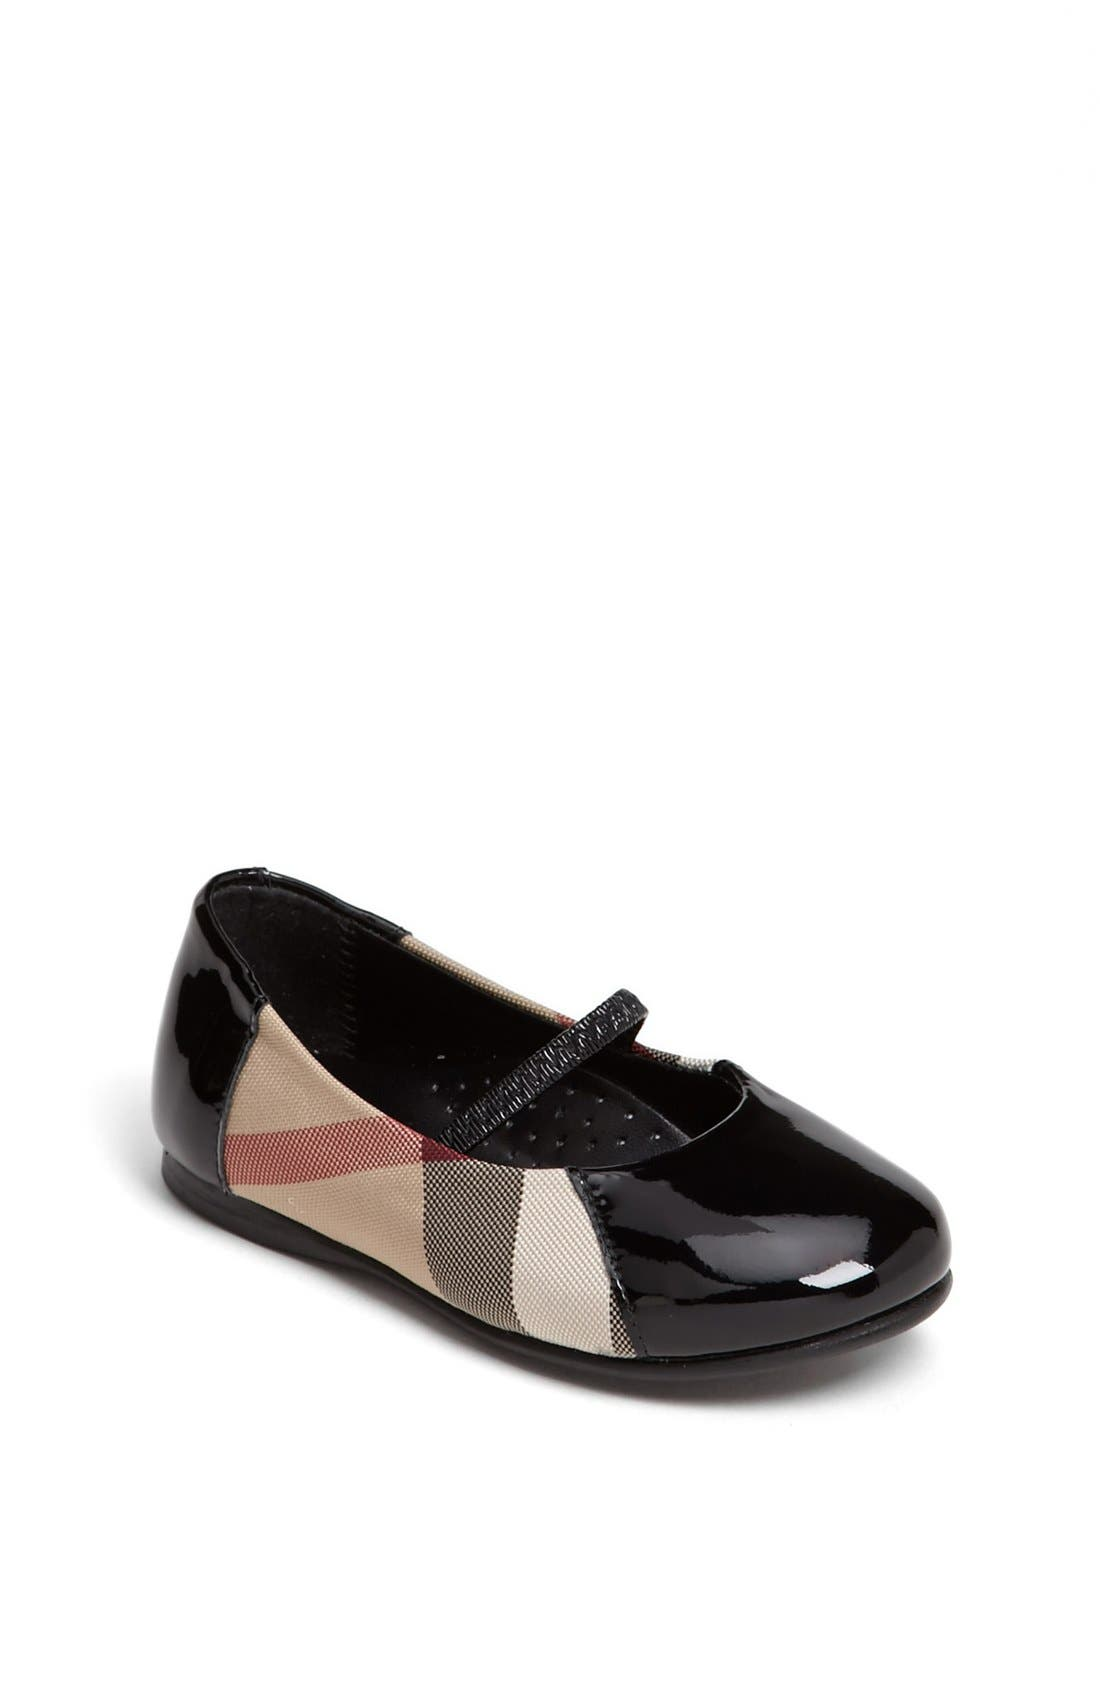 Alternate Image 1 Selected - Burberry 'Milly' Flat (Walker, Toddler, Little Kid & Big Kid)